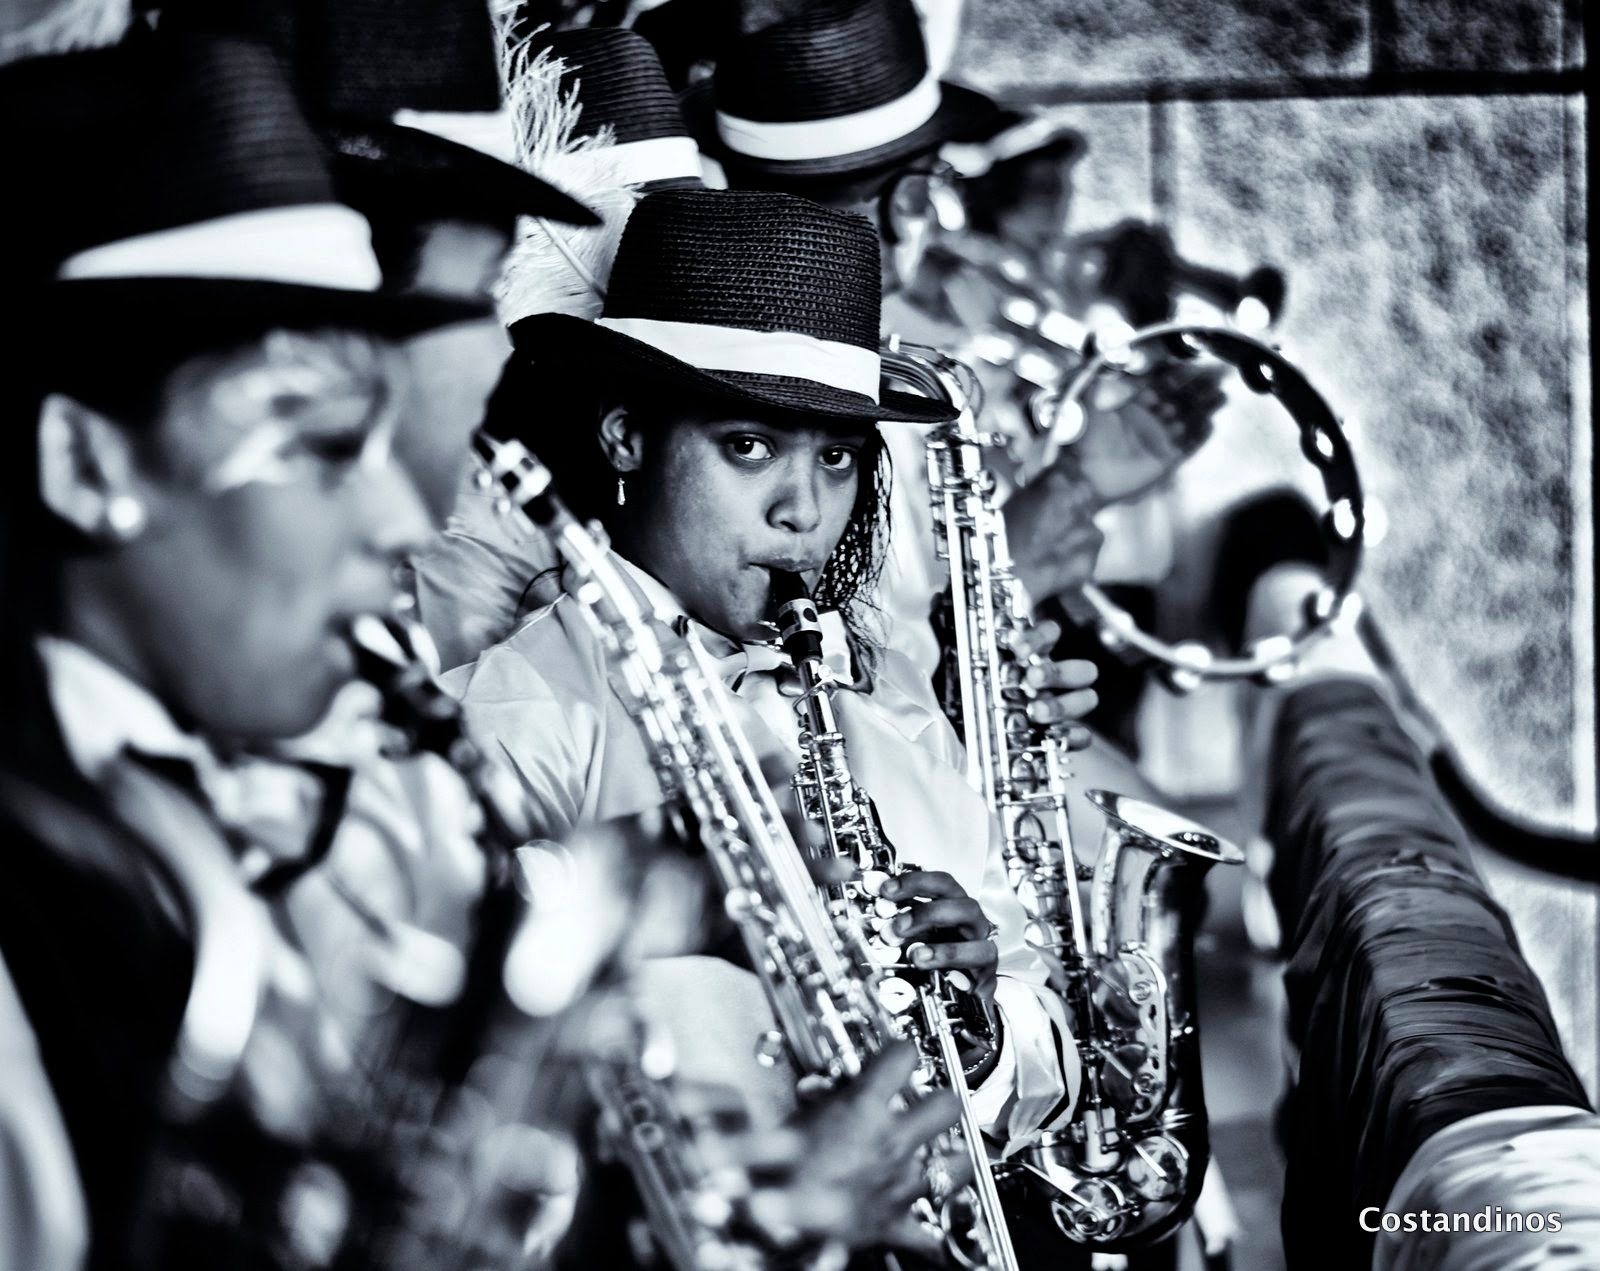 Image 2 cape minstrels kaapse klopse artscape theatre cape town black white photography